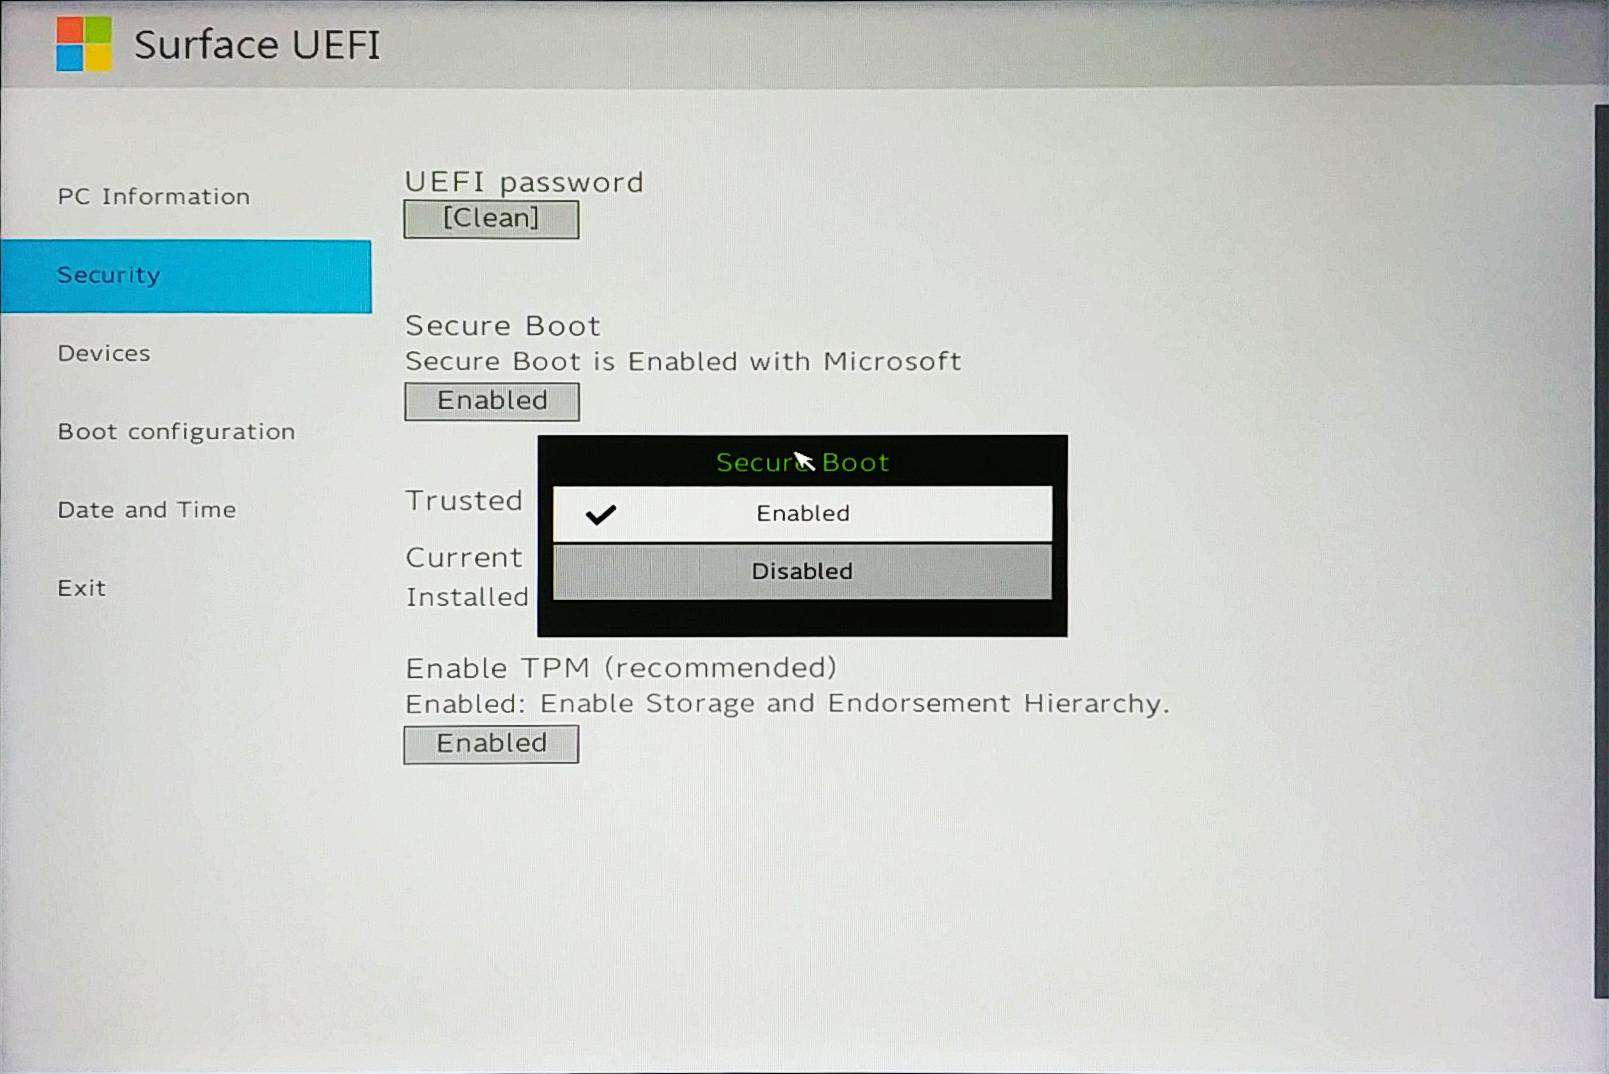 Surface Go UEFI - Control Secure Boot